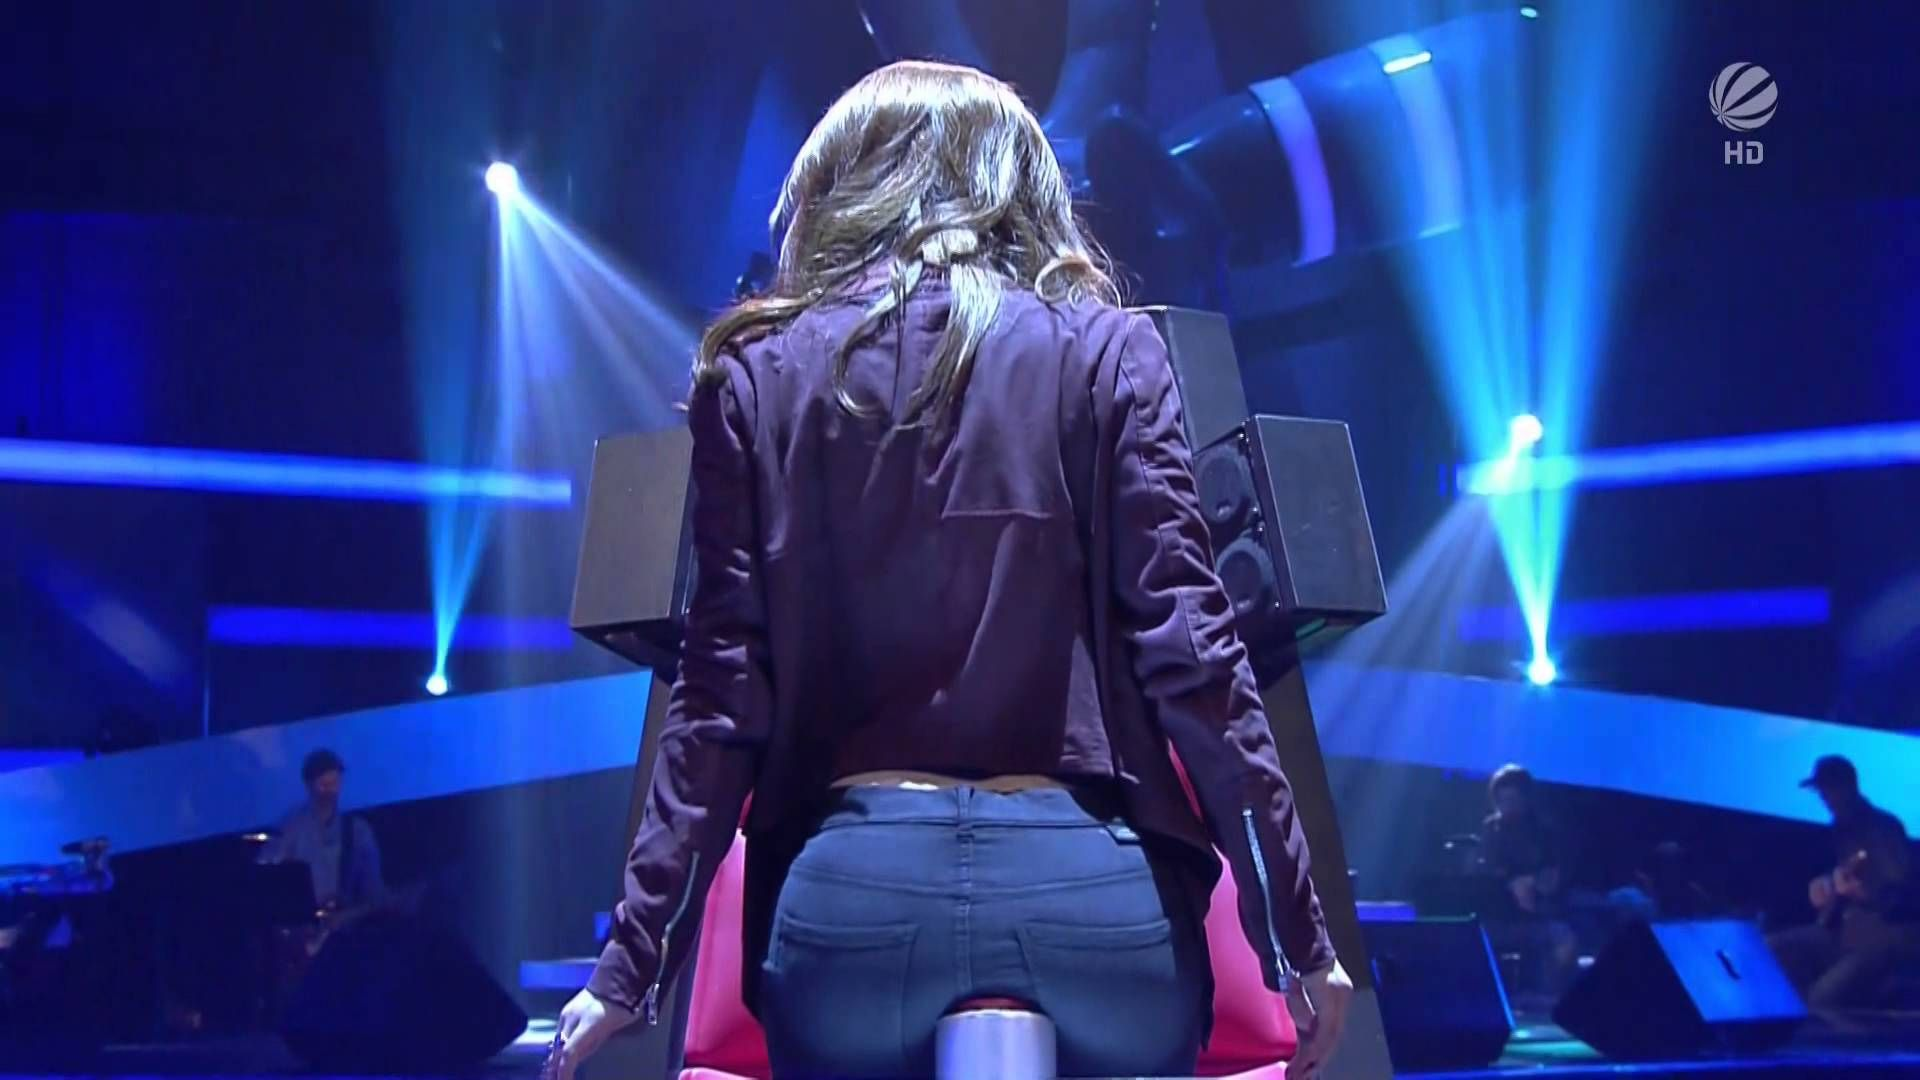 Lena Meyer Landrut Po The Voice Kids 20140321 Sc H264 1080i B E A